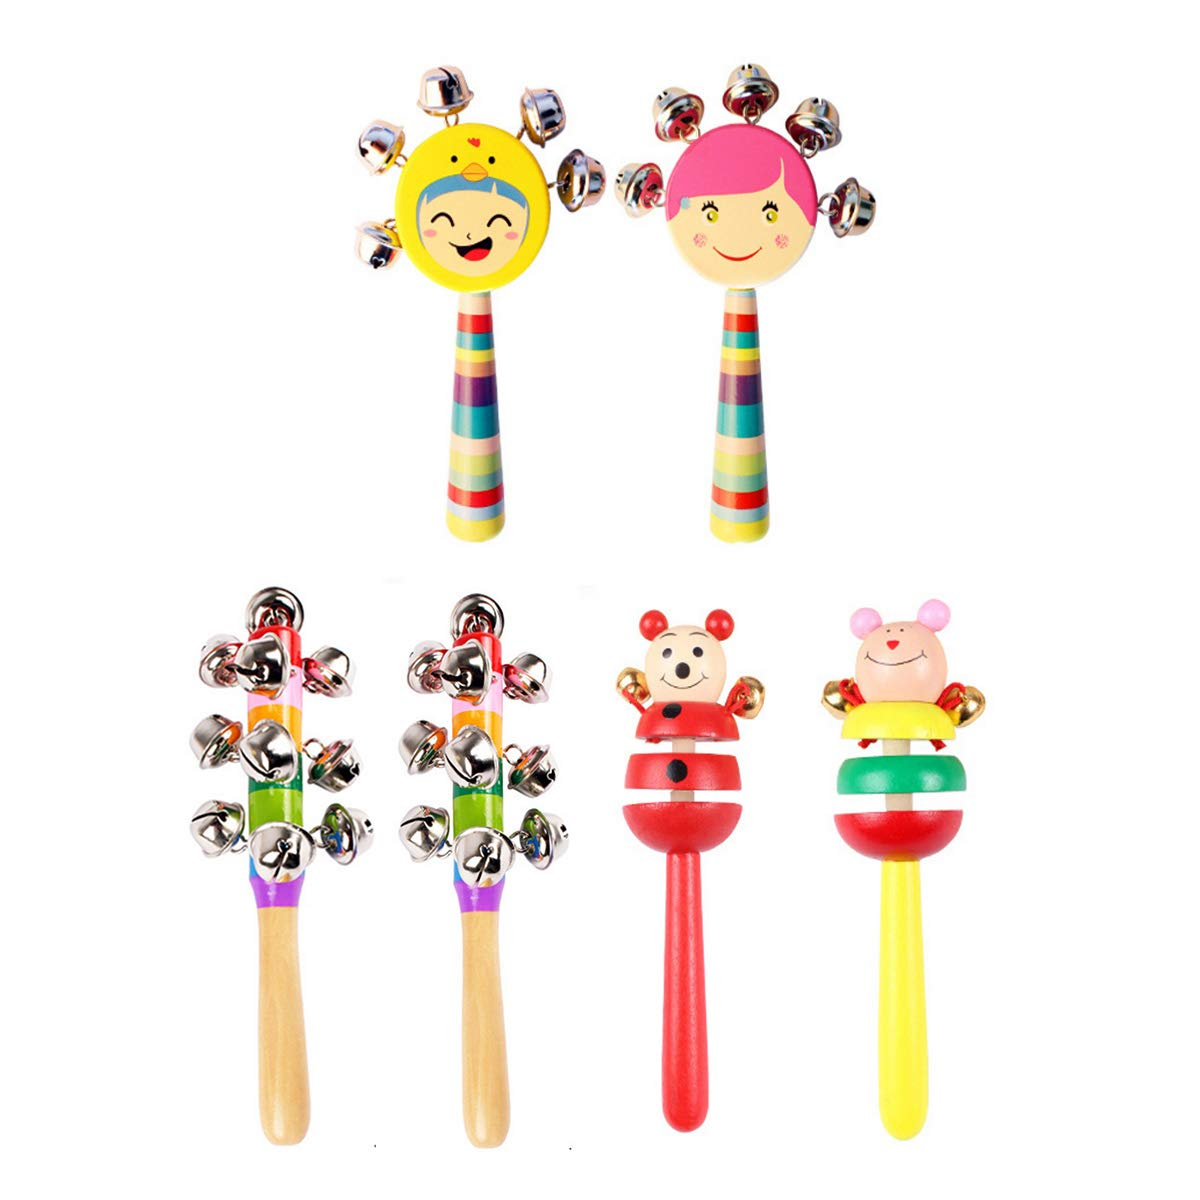 6 Pcs Vivid Color Rainbow Handle Wooden Bells Jingle Stick Shaker Rattle Baby Kids Children Musical Toys by CiCy